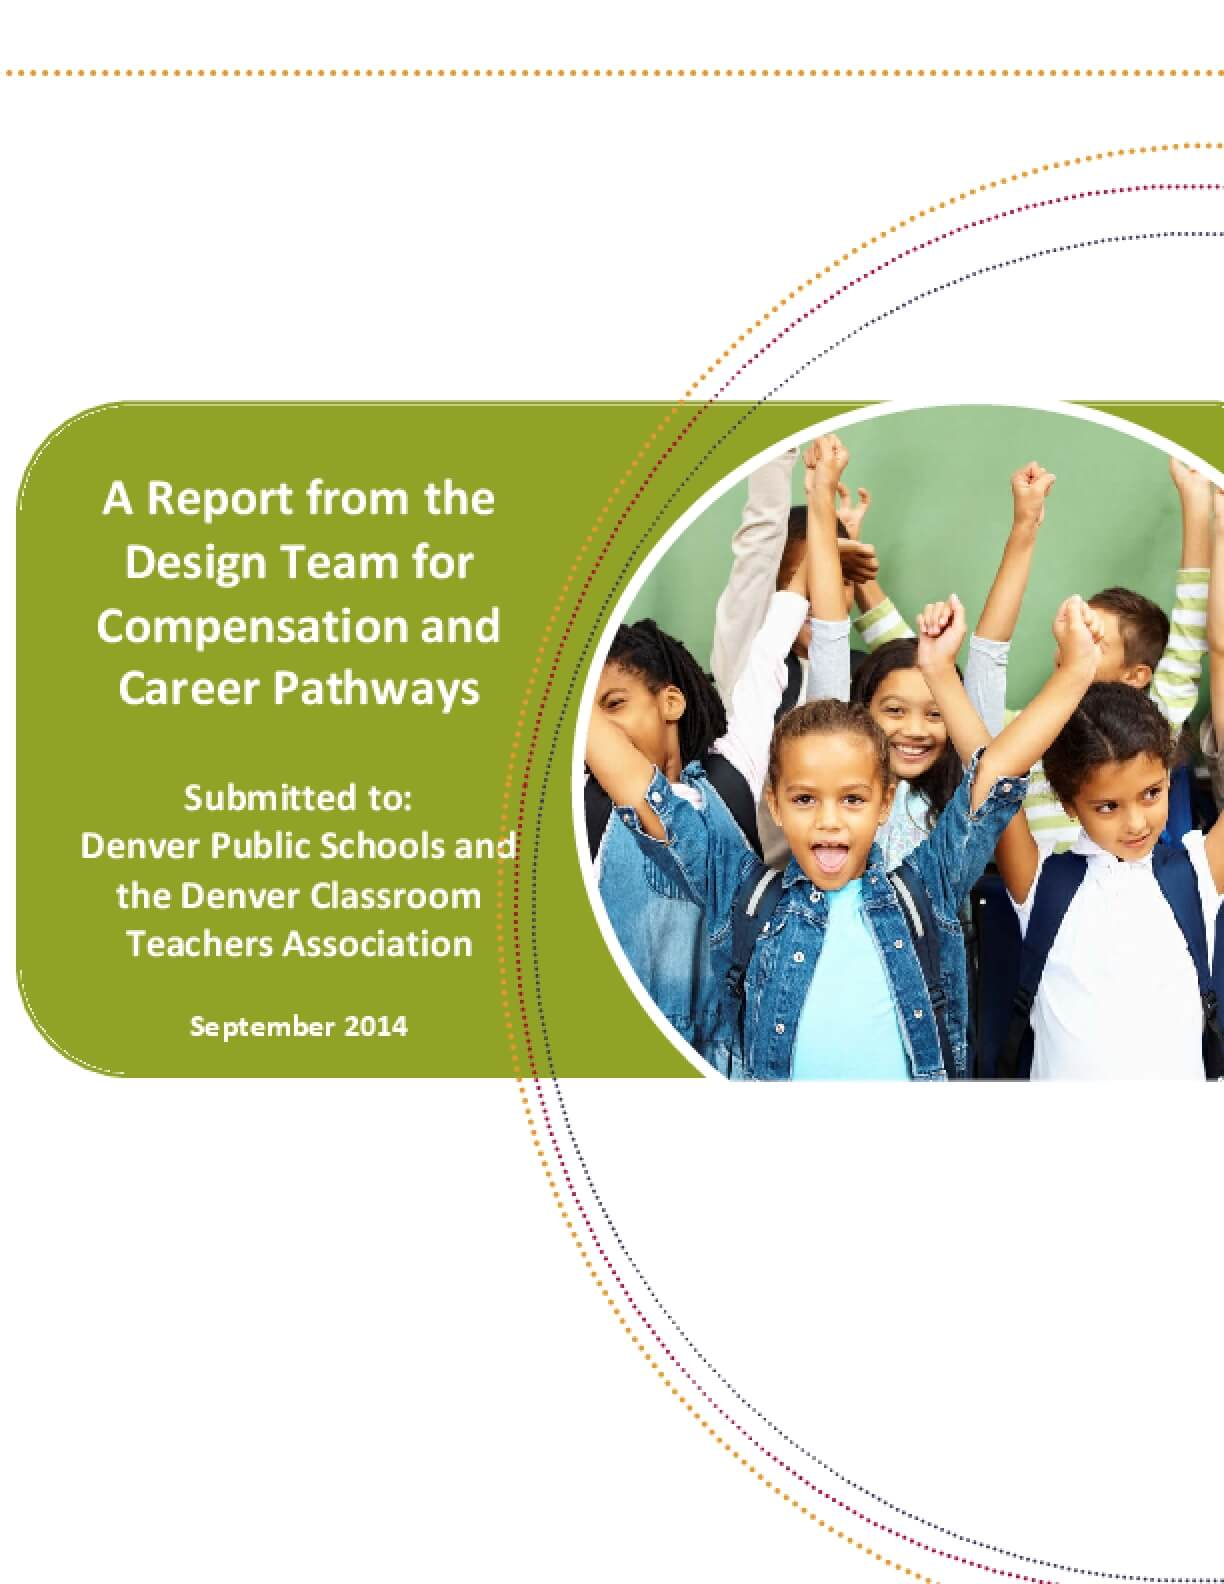 A Report from the Design Team for Compensation and Career Pathways